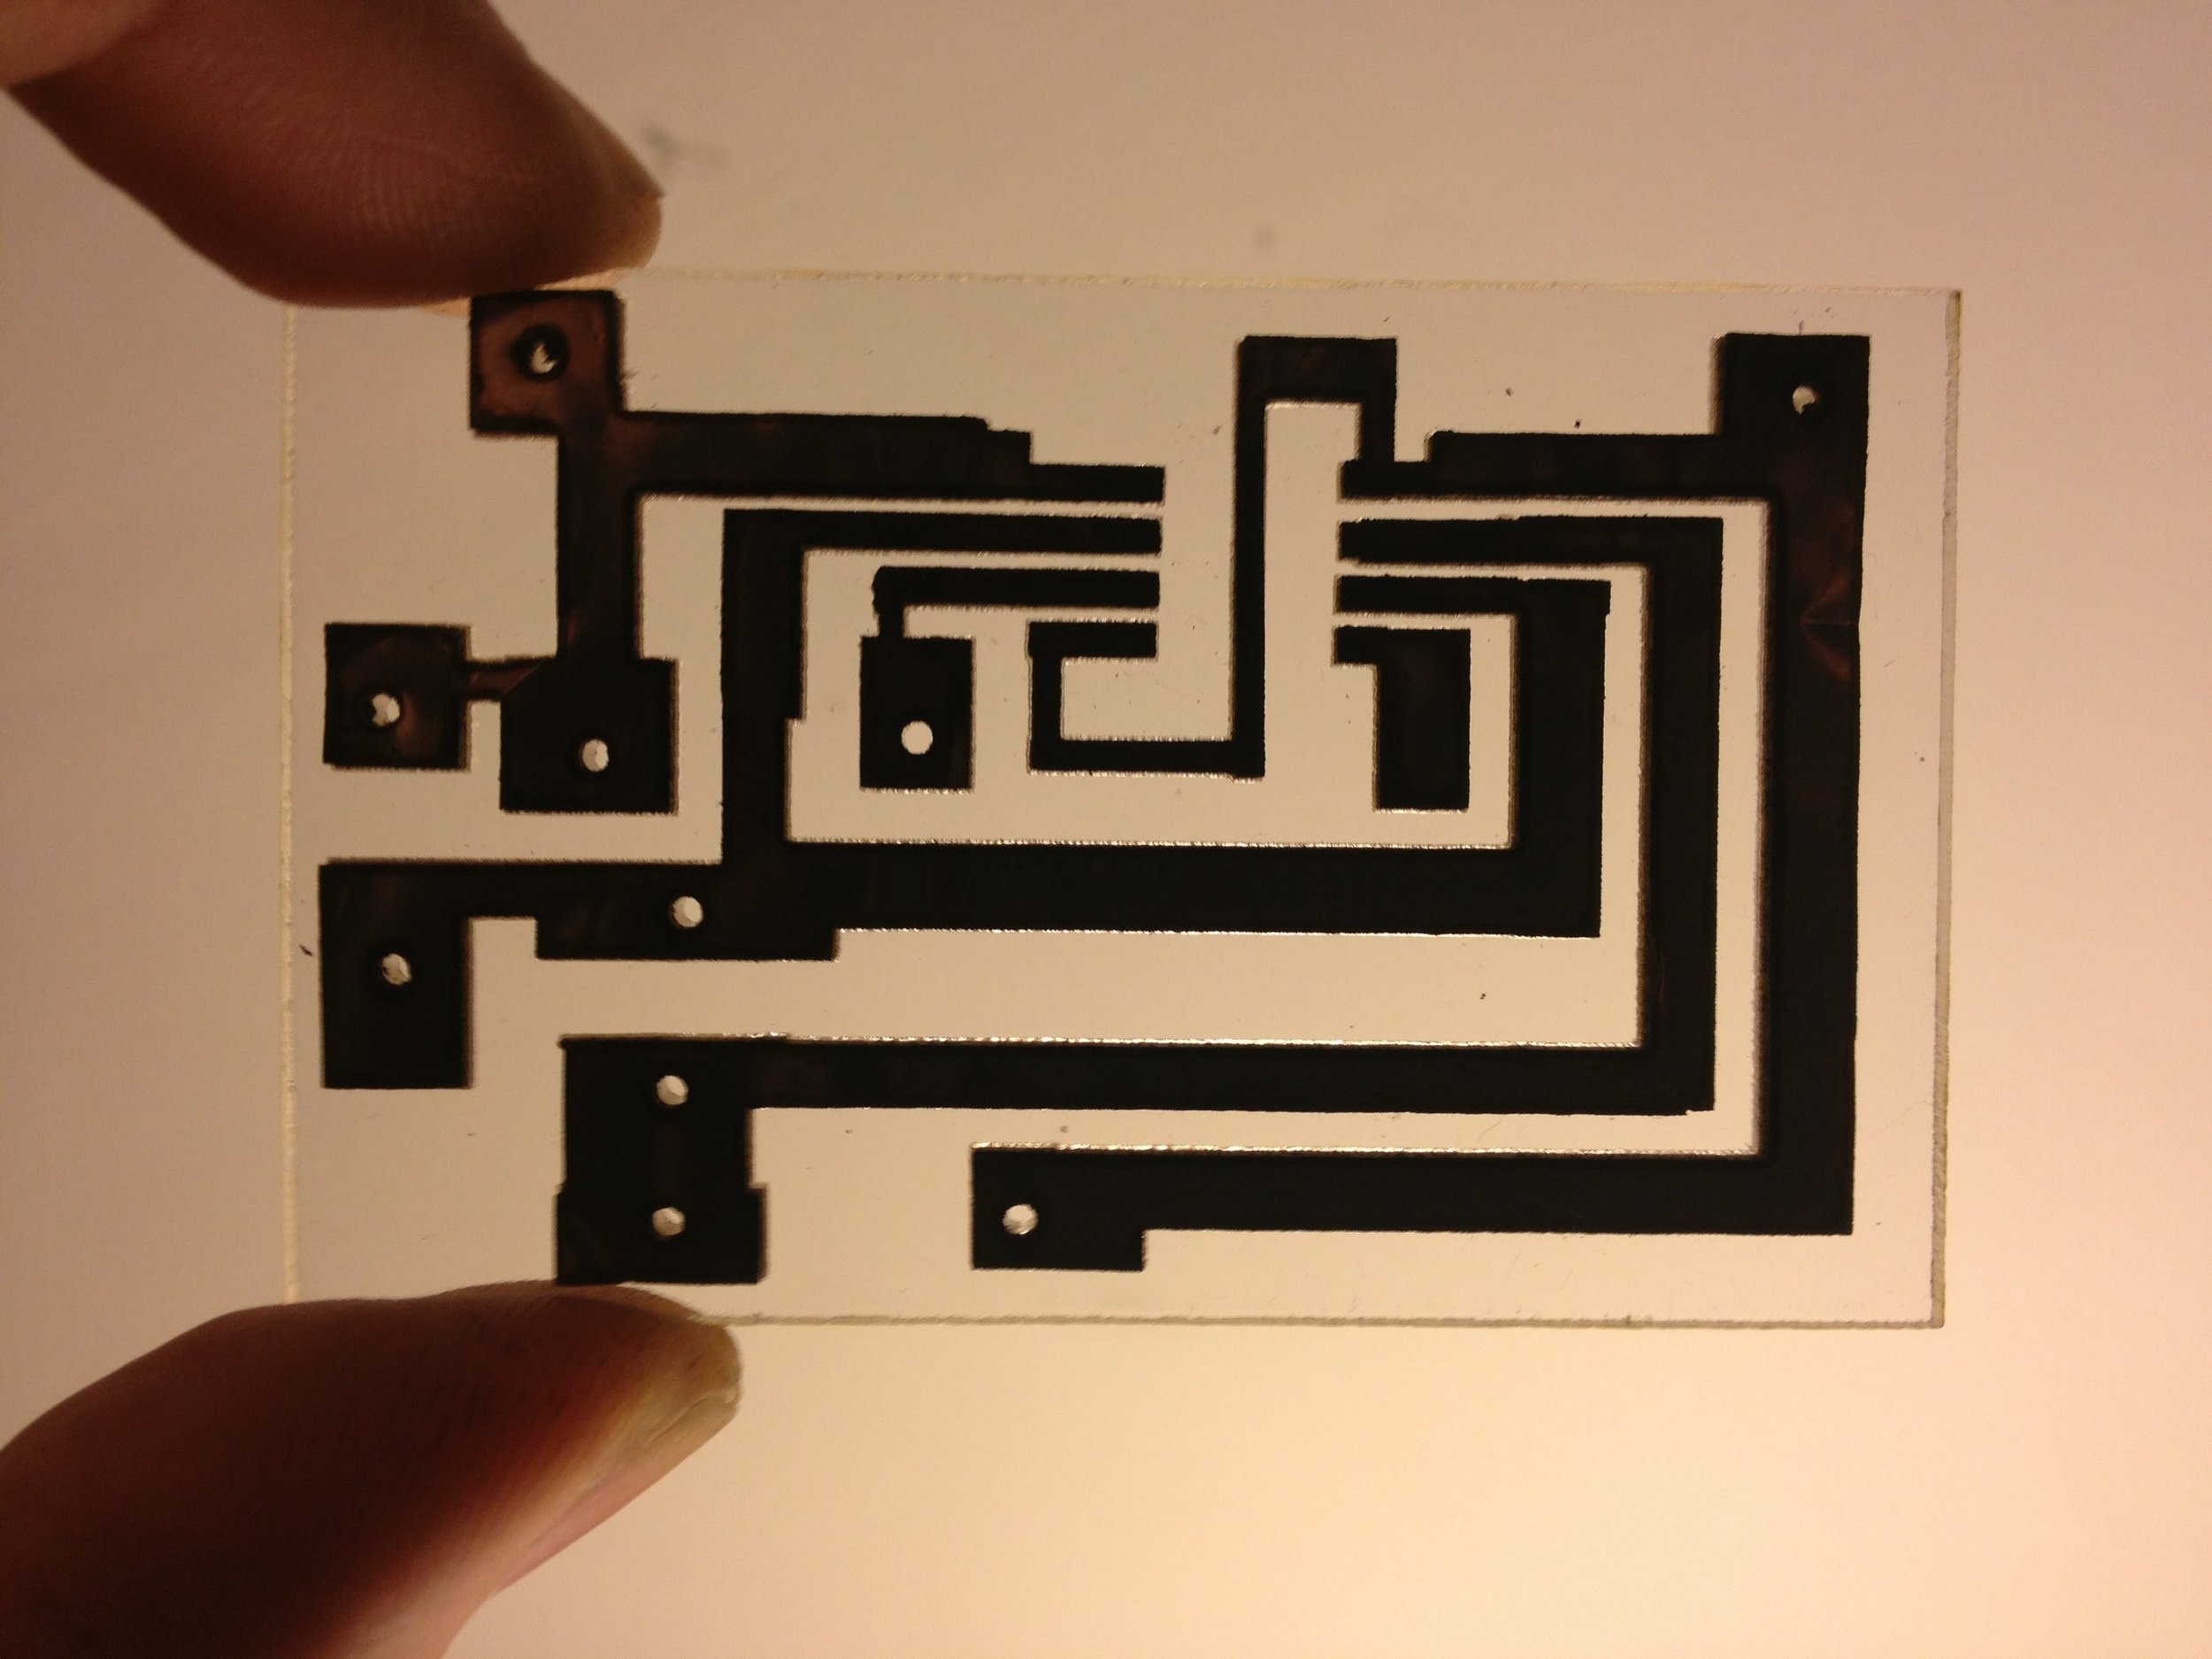 Laser Etched Circuit.jpg